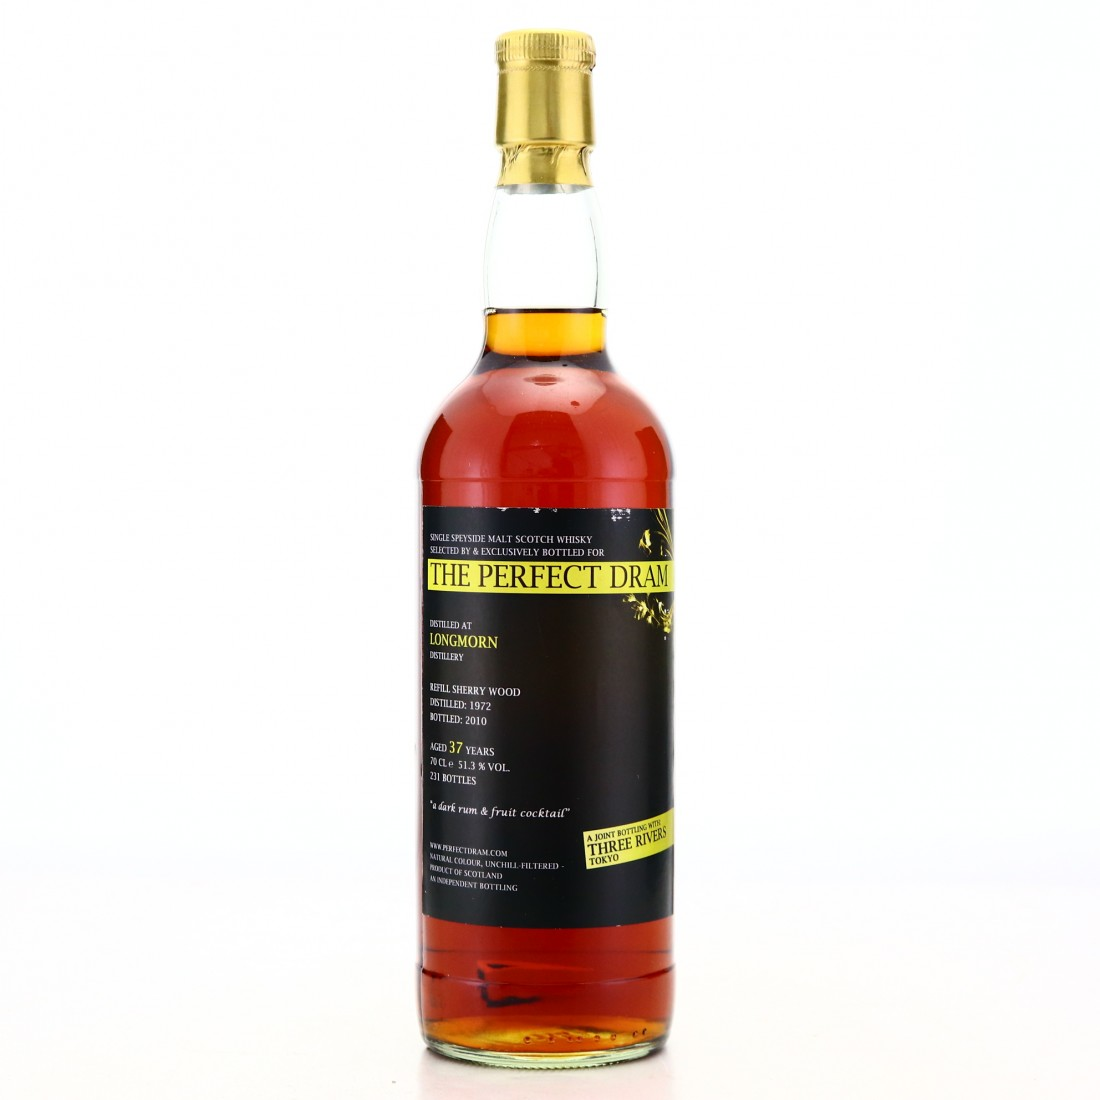 Longmorn 1972 Whisky Agency 37 Year Old Perfect Dram / Three Rivers